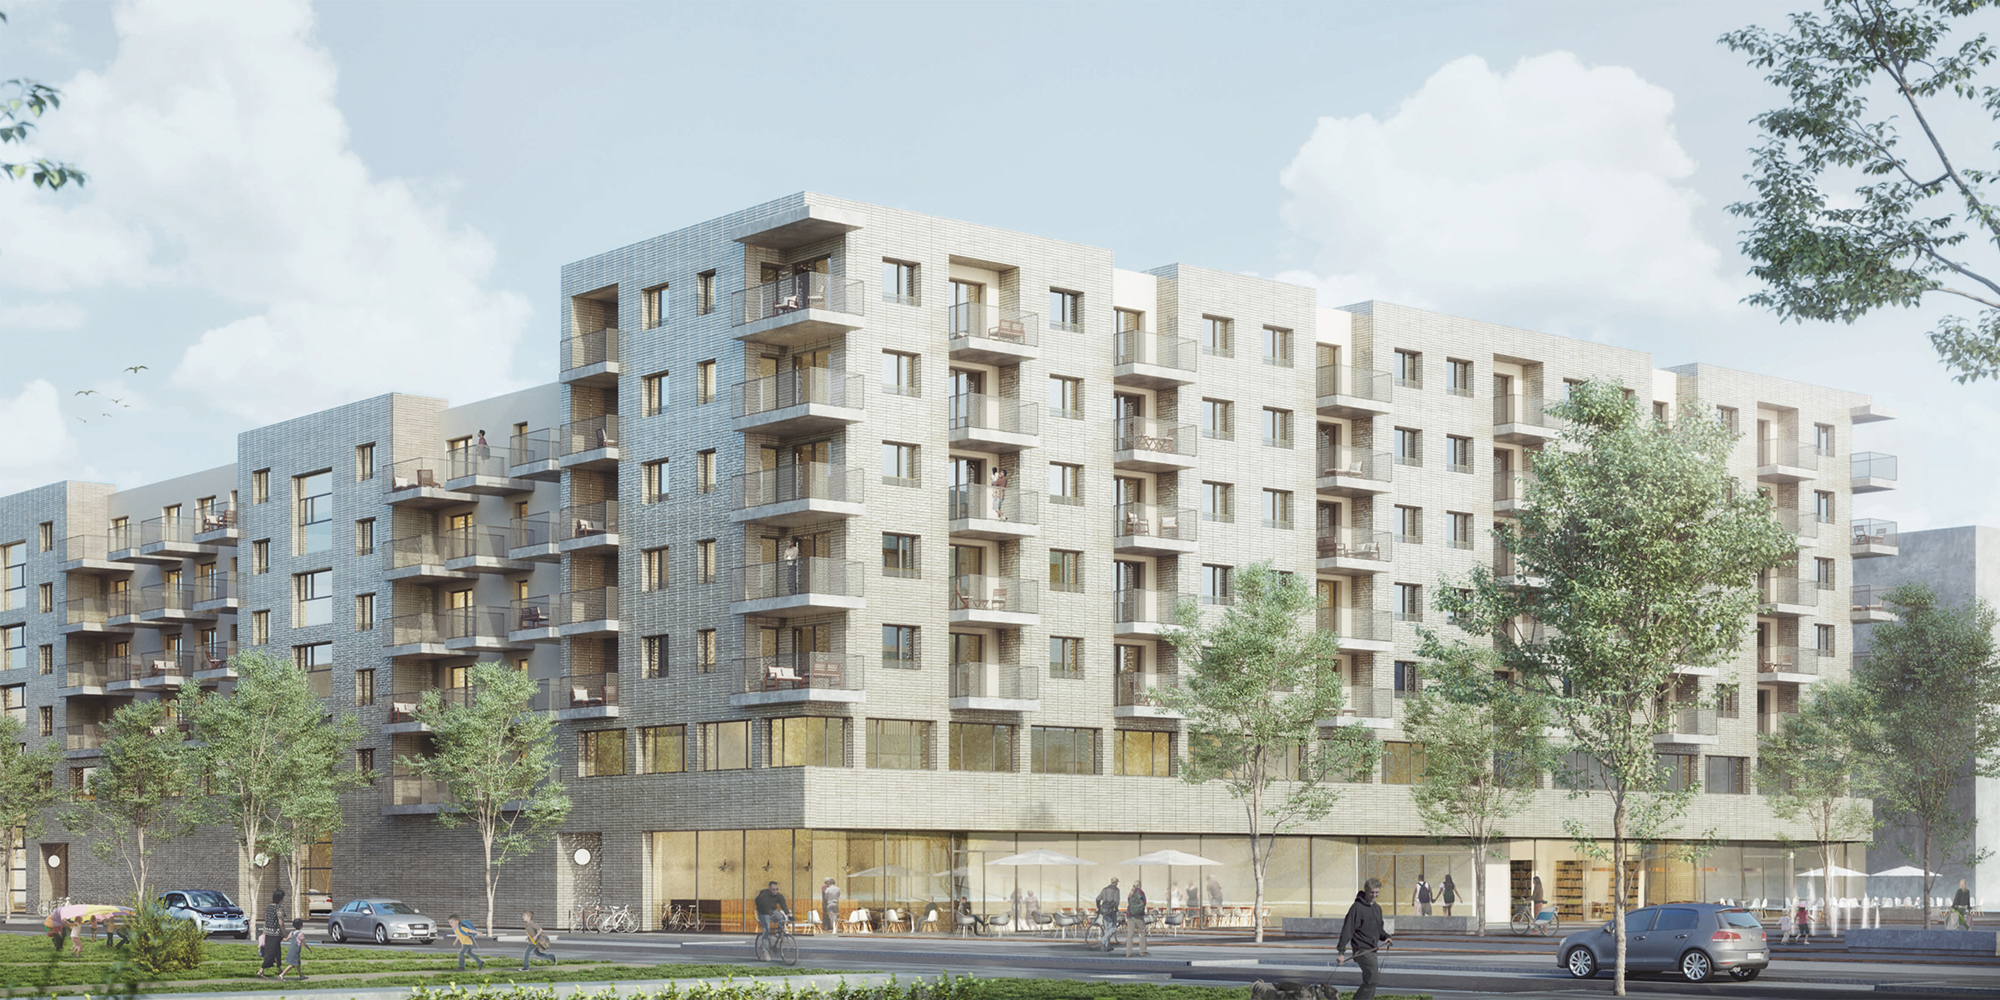 Retail, childcare and housing. On behalf of Instone Real Estate, Frankfurt-based Menges Scheffler Architekten have designed the structures for Site B, north of the central plaza. Rendering: Menges Scheffler Architekten.